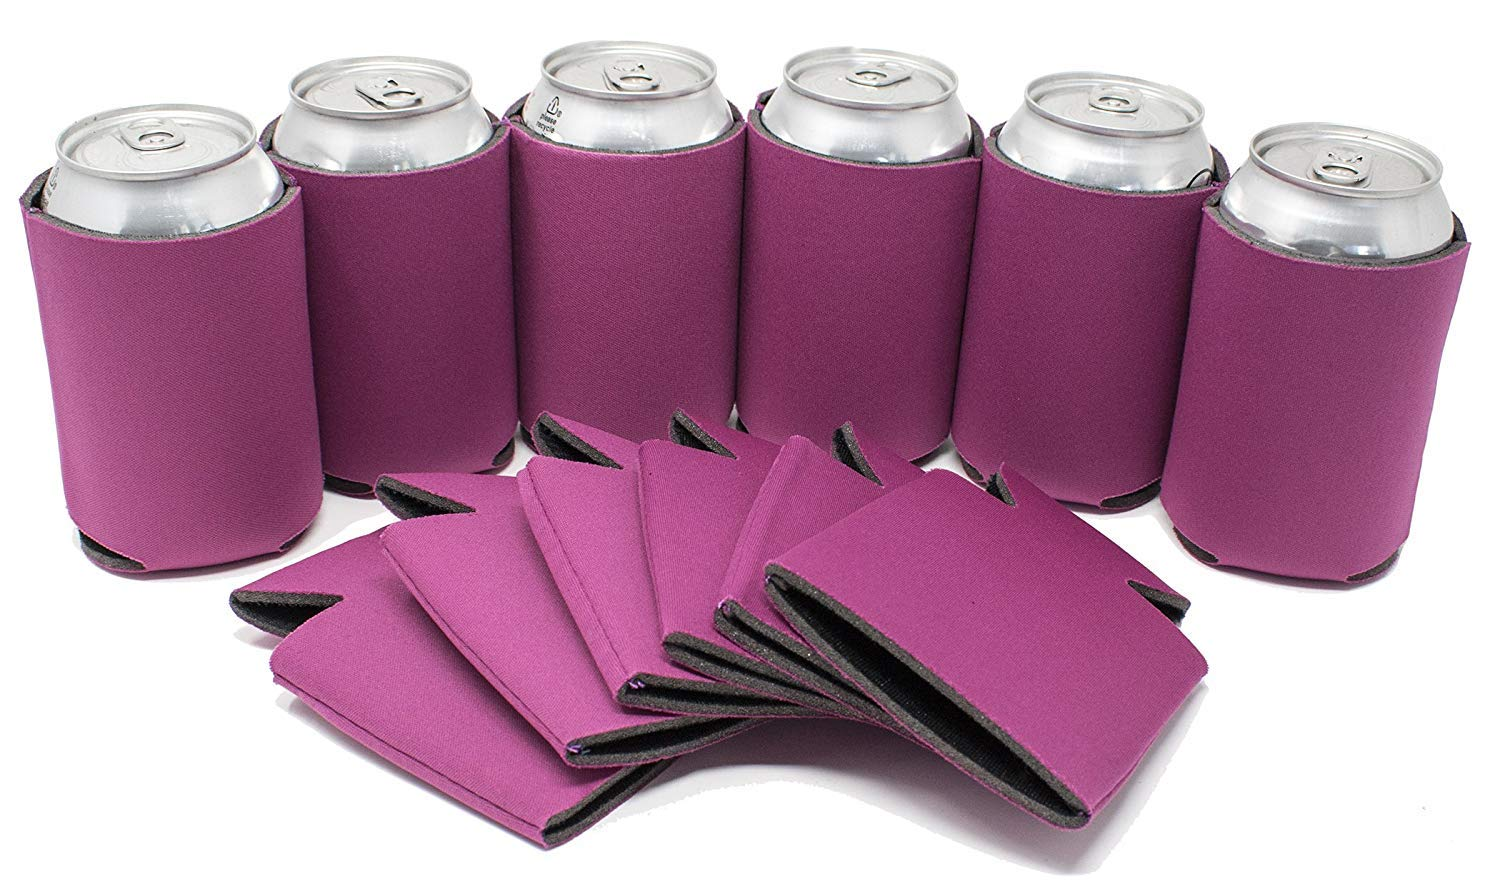 TahoeBay 12 Blank Beer Can Coolers, Plain Bulk Collapsible Soda Cover Coolies, DIY Personalized Sublimation Sleeves for Weddings, Bachelorette Parties, Funny HTV Party Favors (Fuchsia, 12)